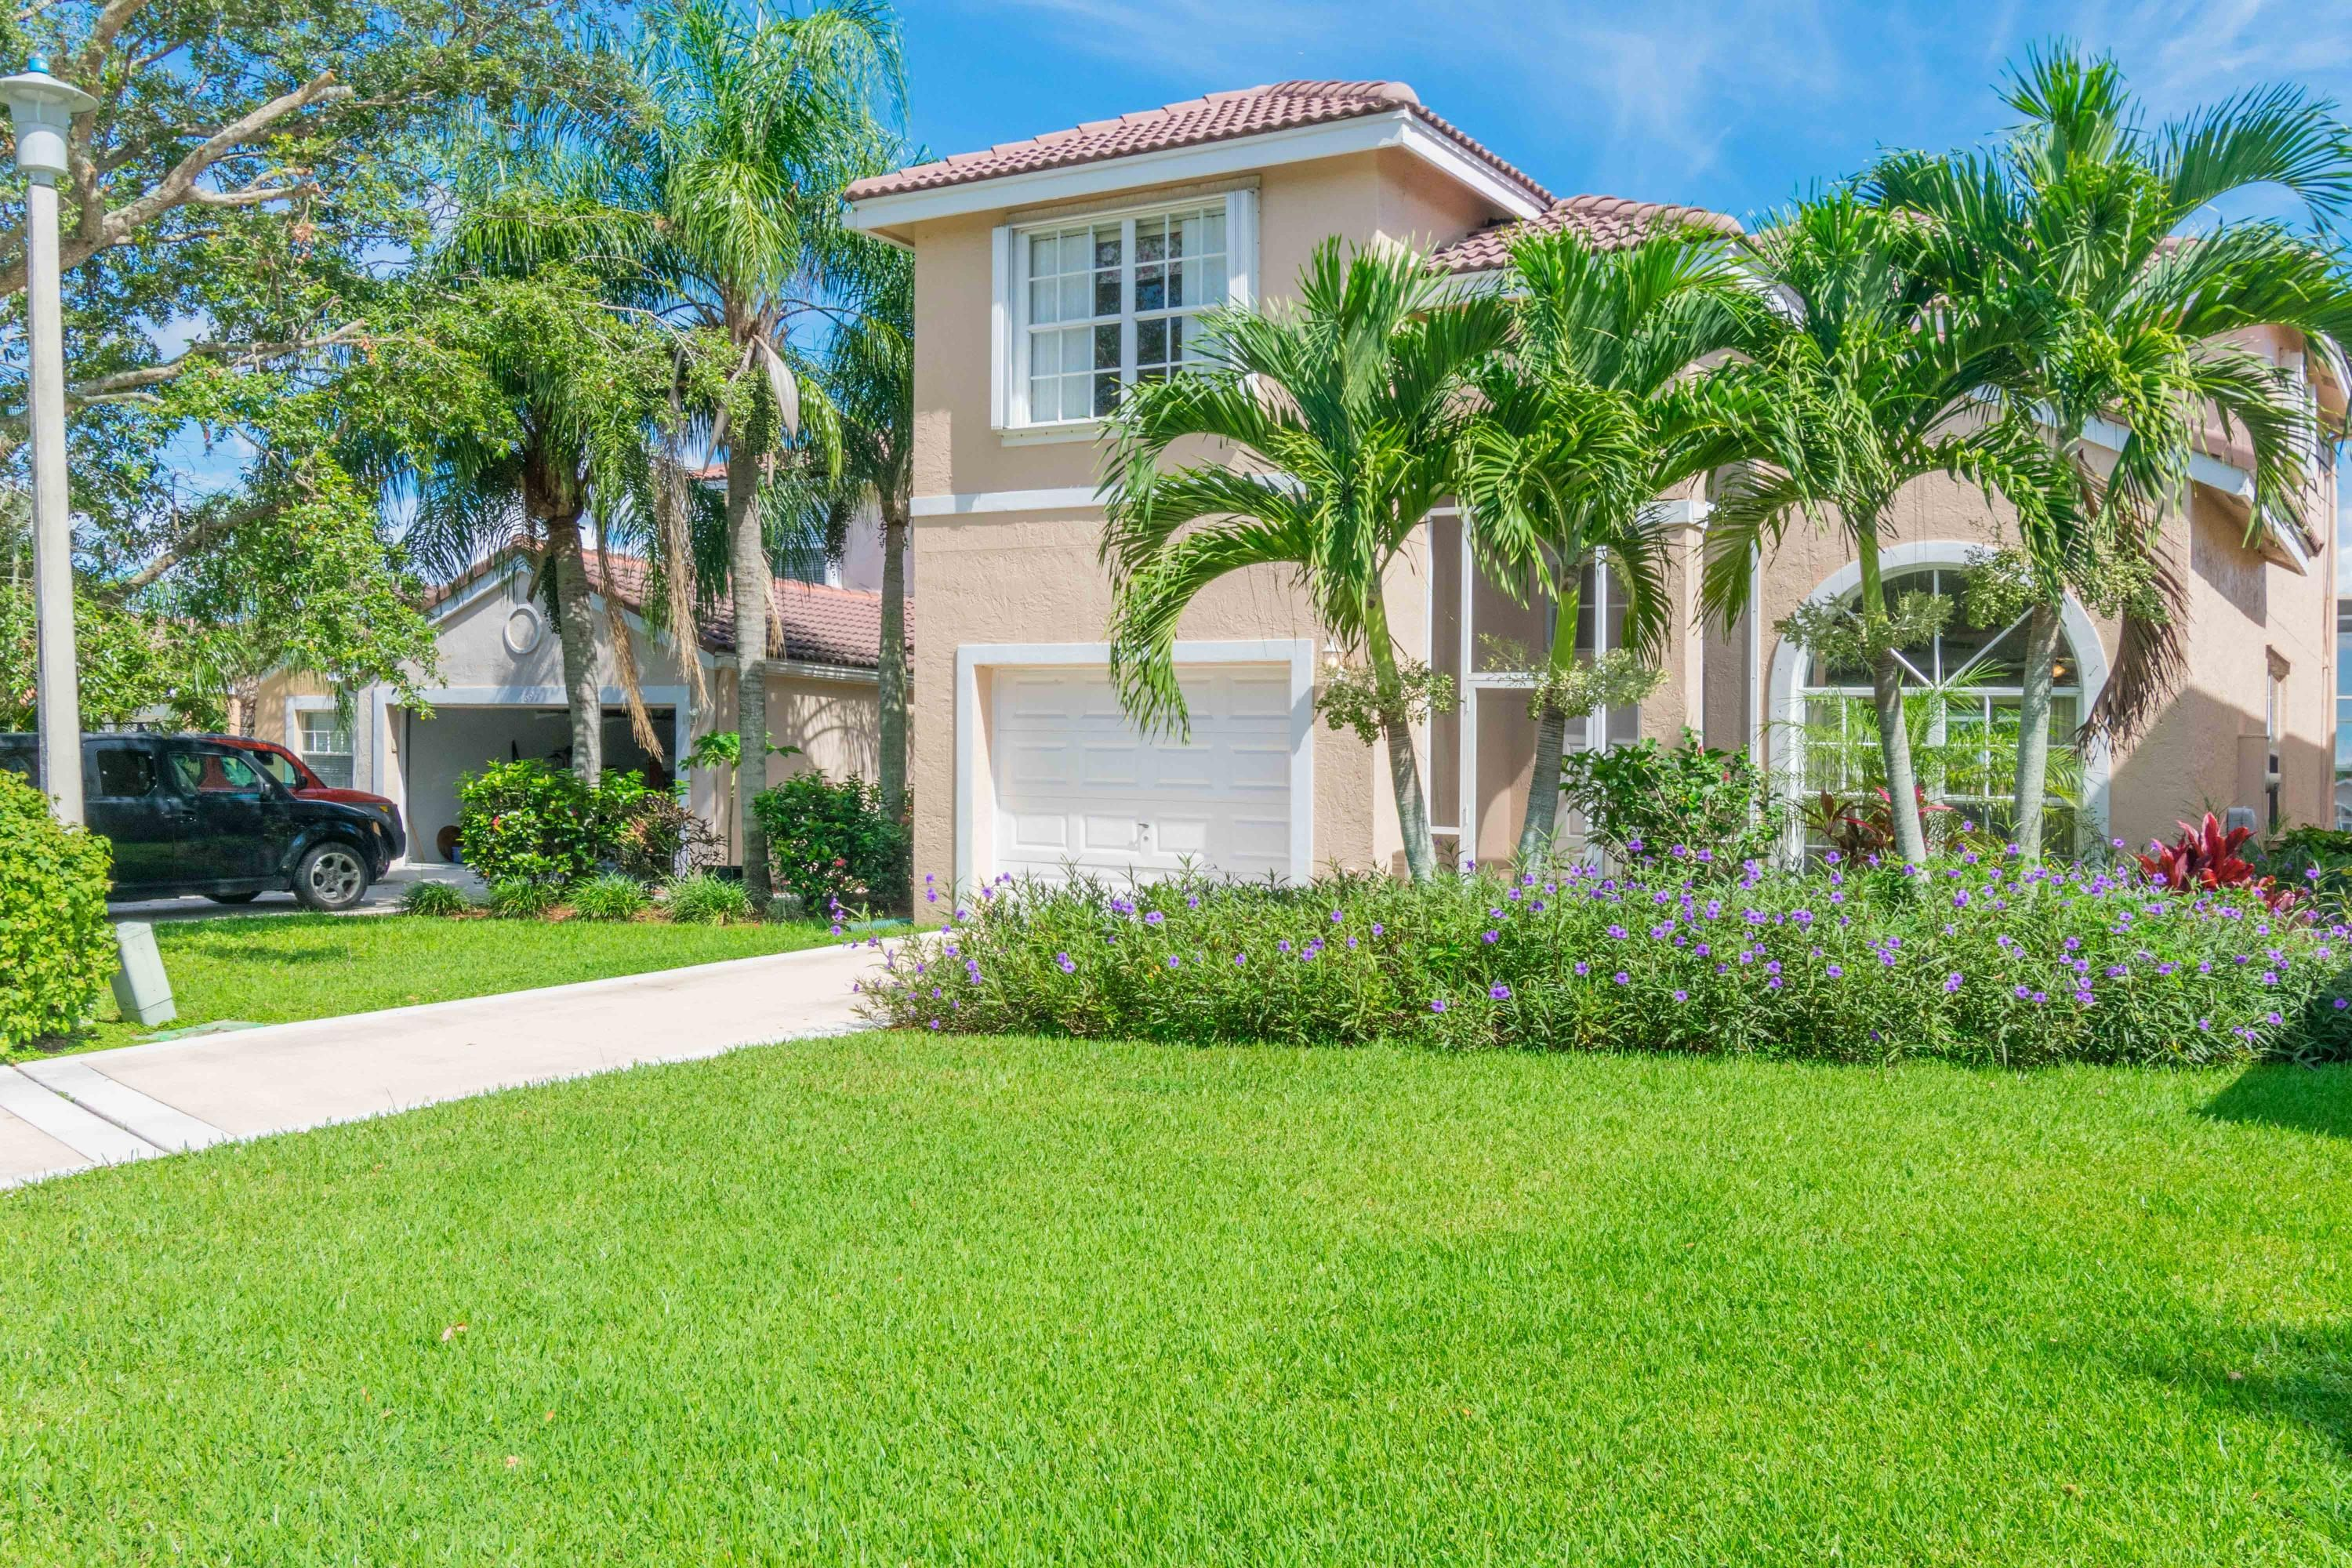 2751b564276195e253c26808b9eceb91 - Bent Tree Gardens West Boynton Beach